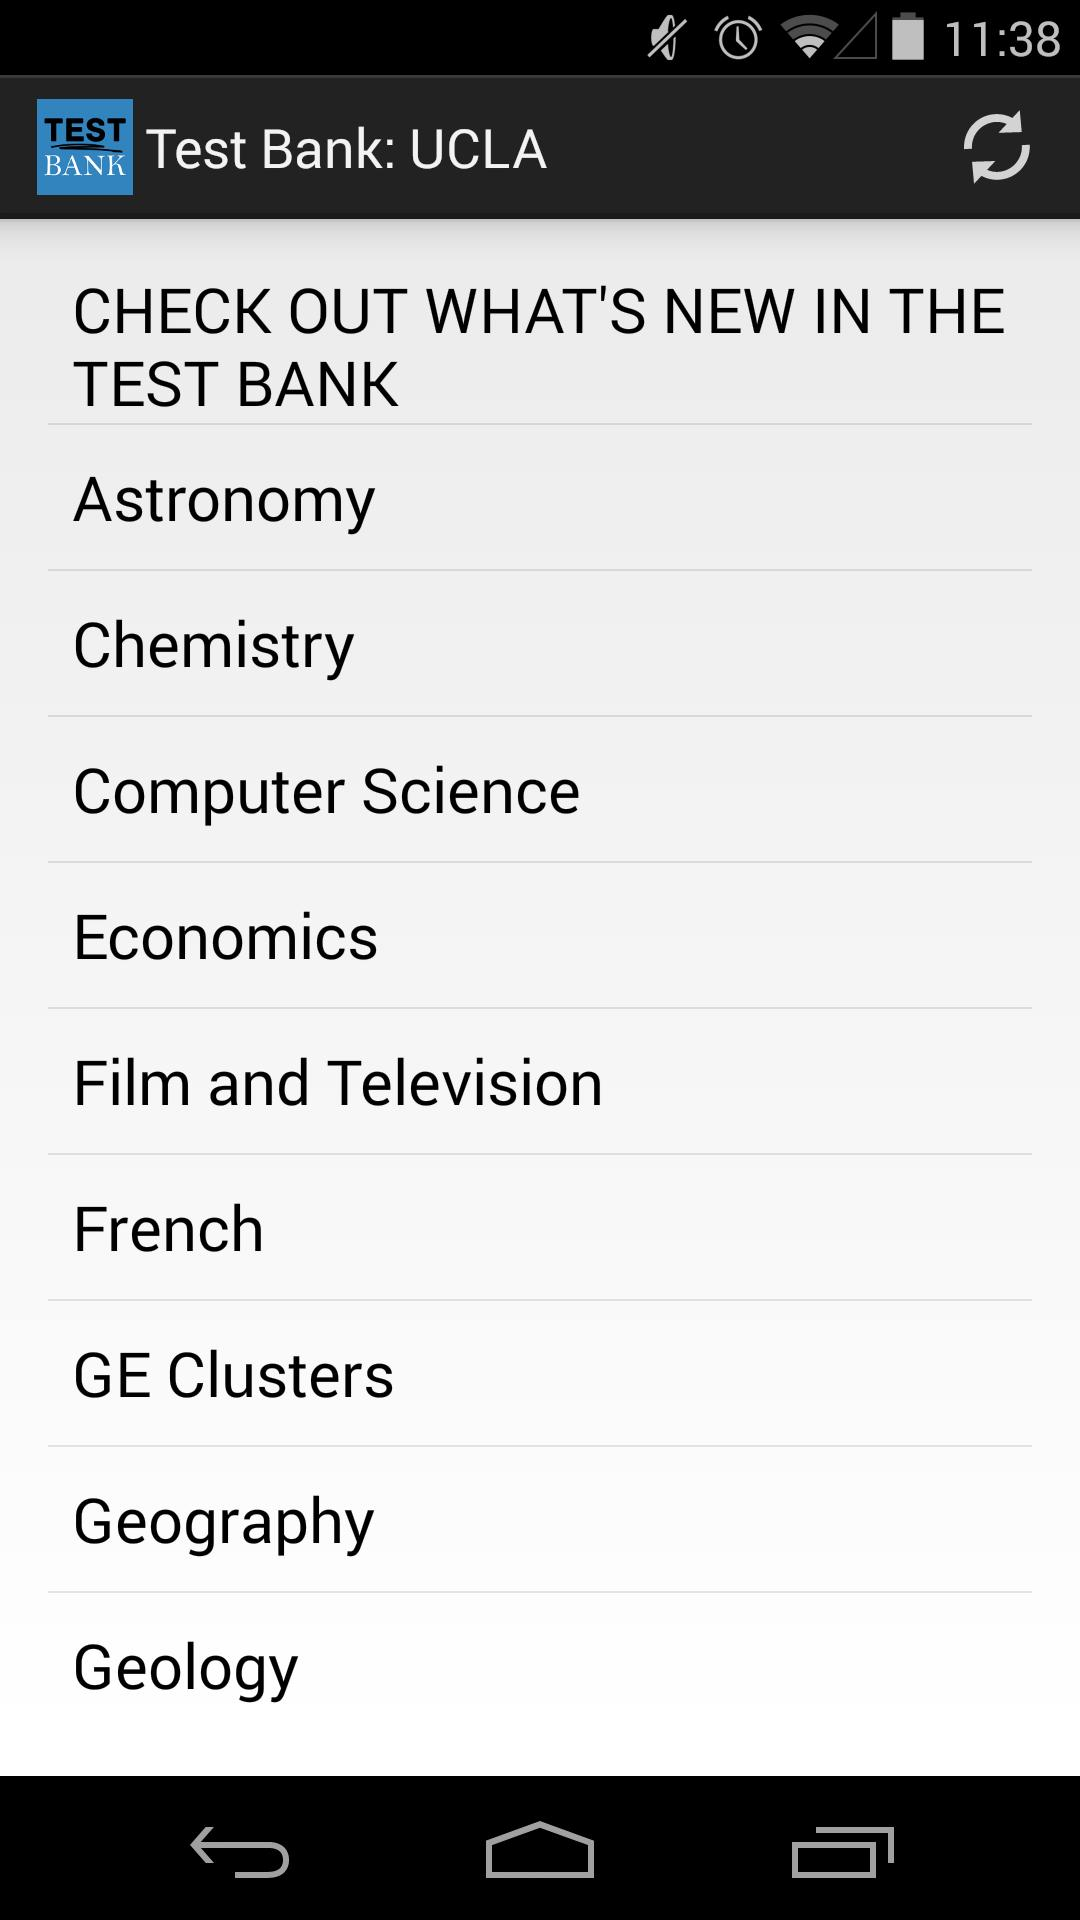 Test Bank: UCLA for Android - APK Download